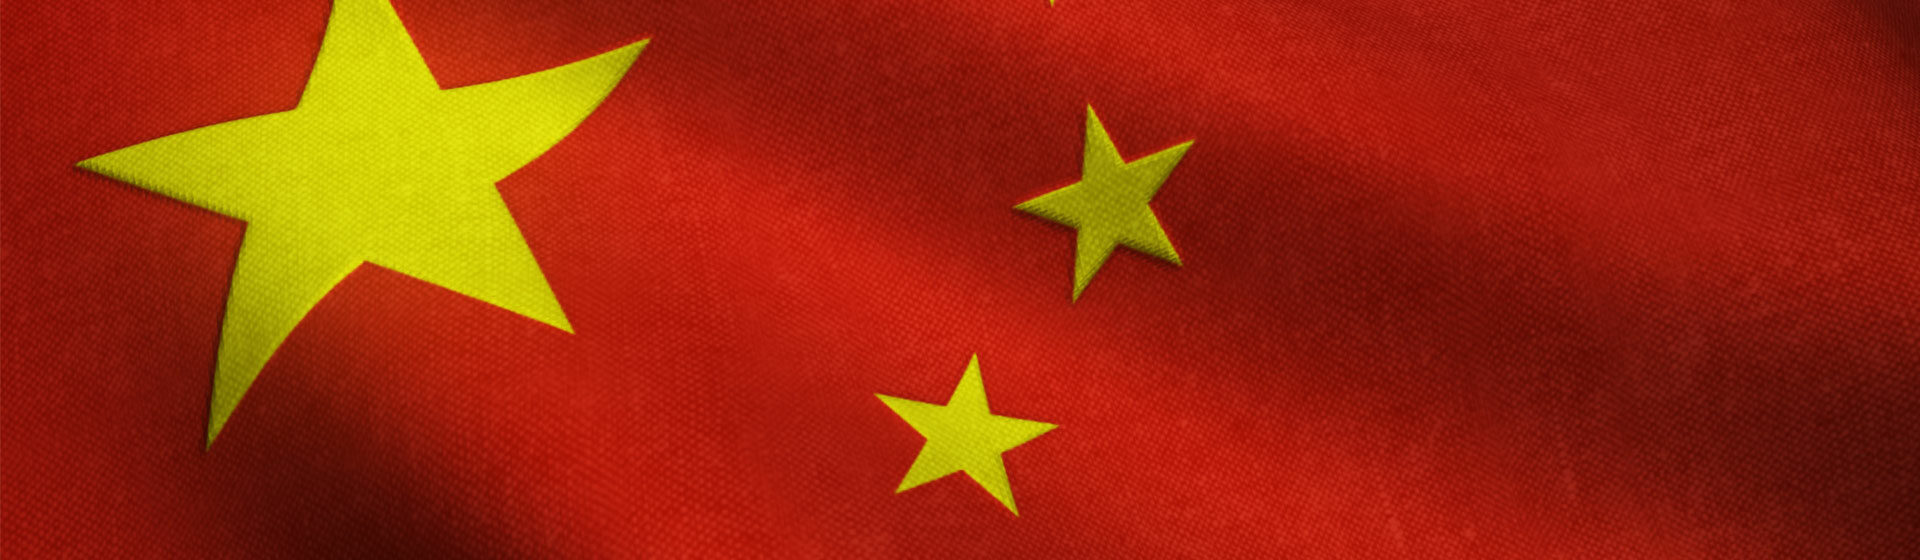 China Passes Data Privacy Law With Enforcement Starting November 2021